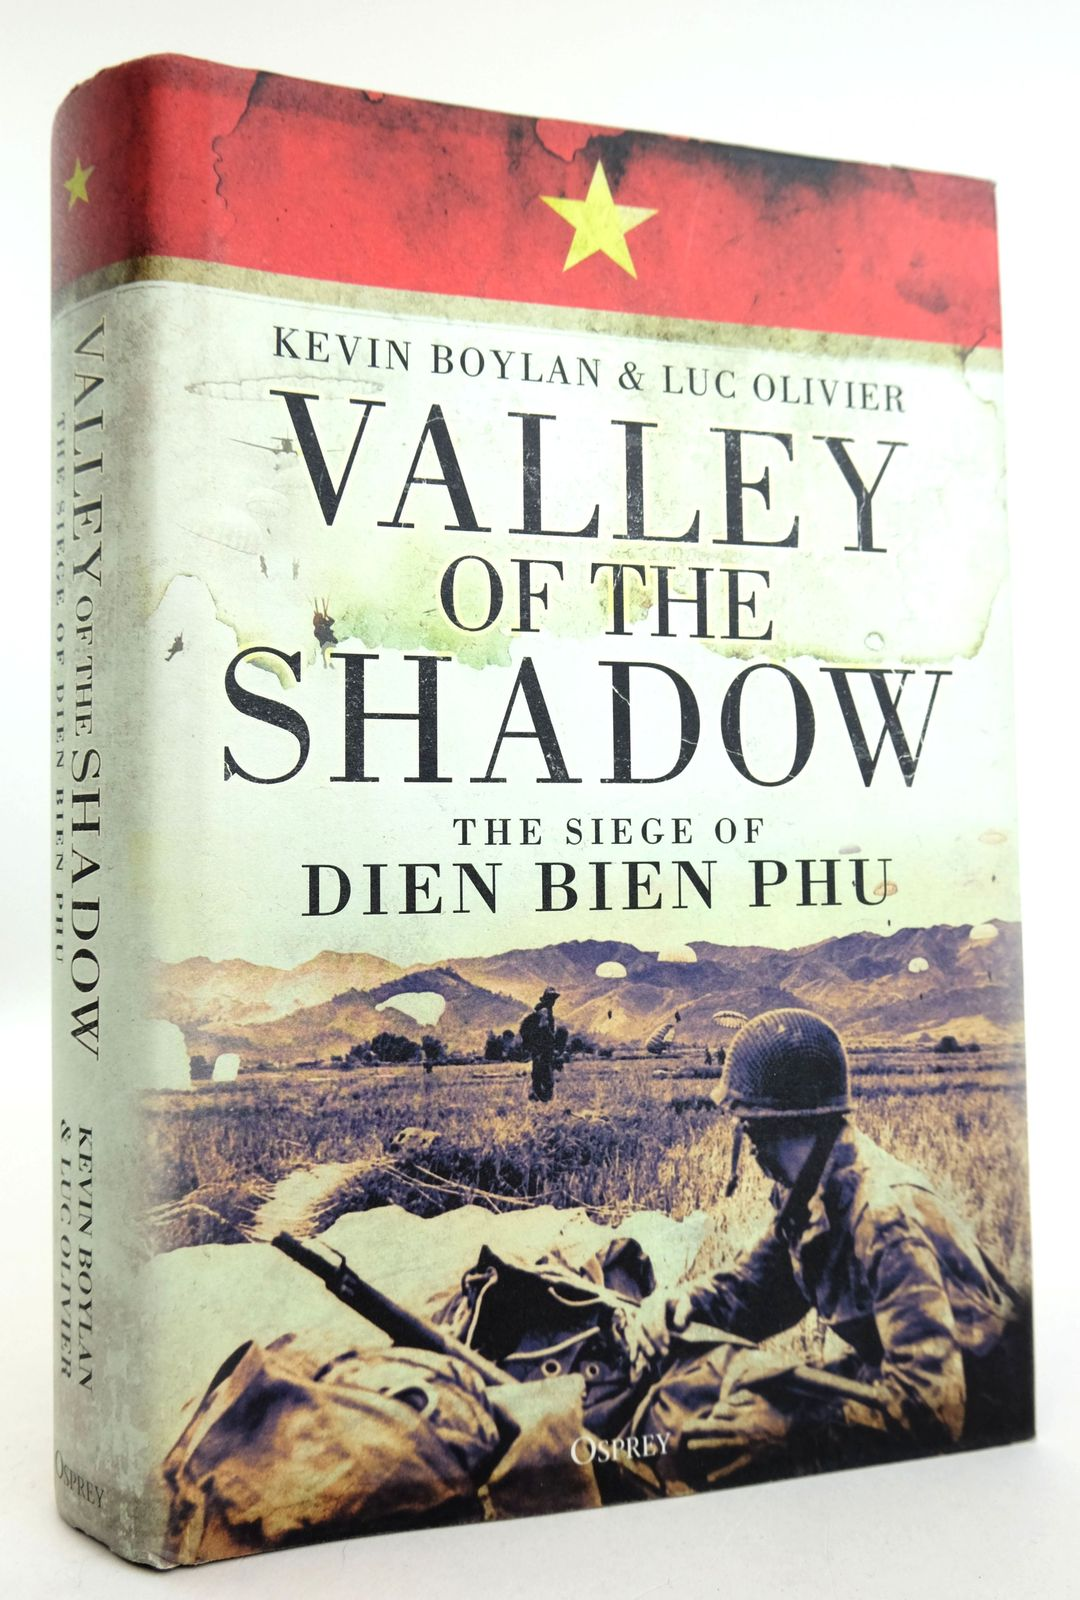 Photo of VALLEY OF THE SHADOW: THE SIEGE OF DIEN BIEN PHU- Stock Number: 1819054